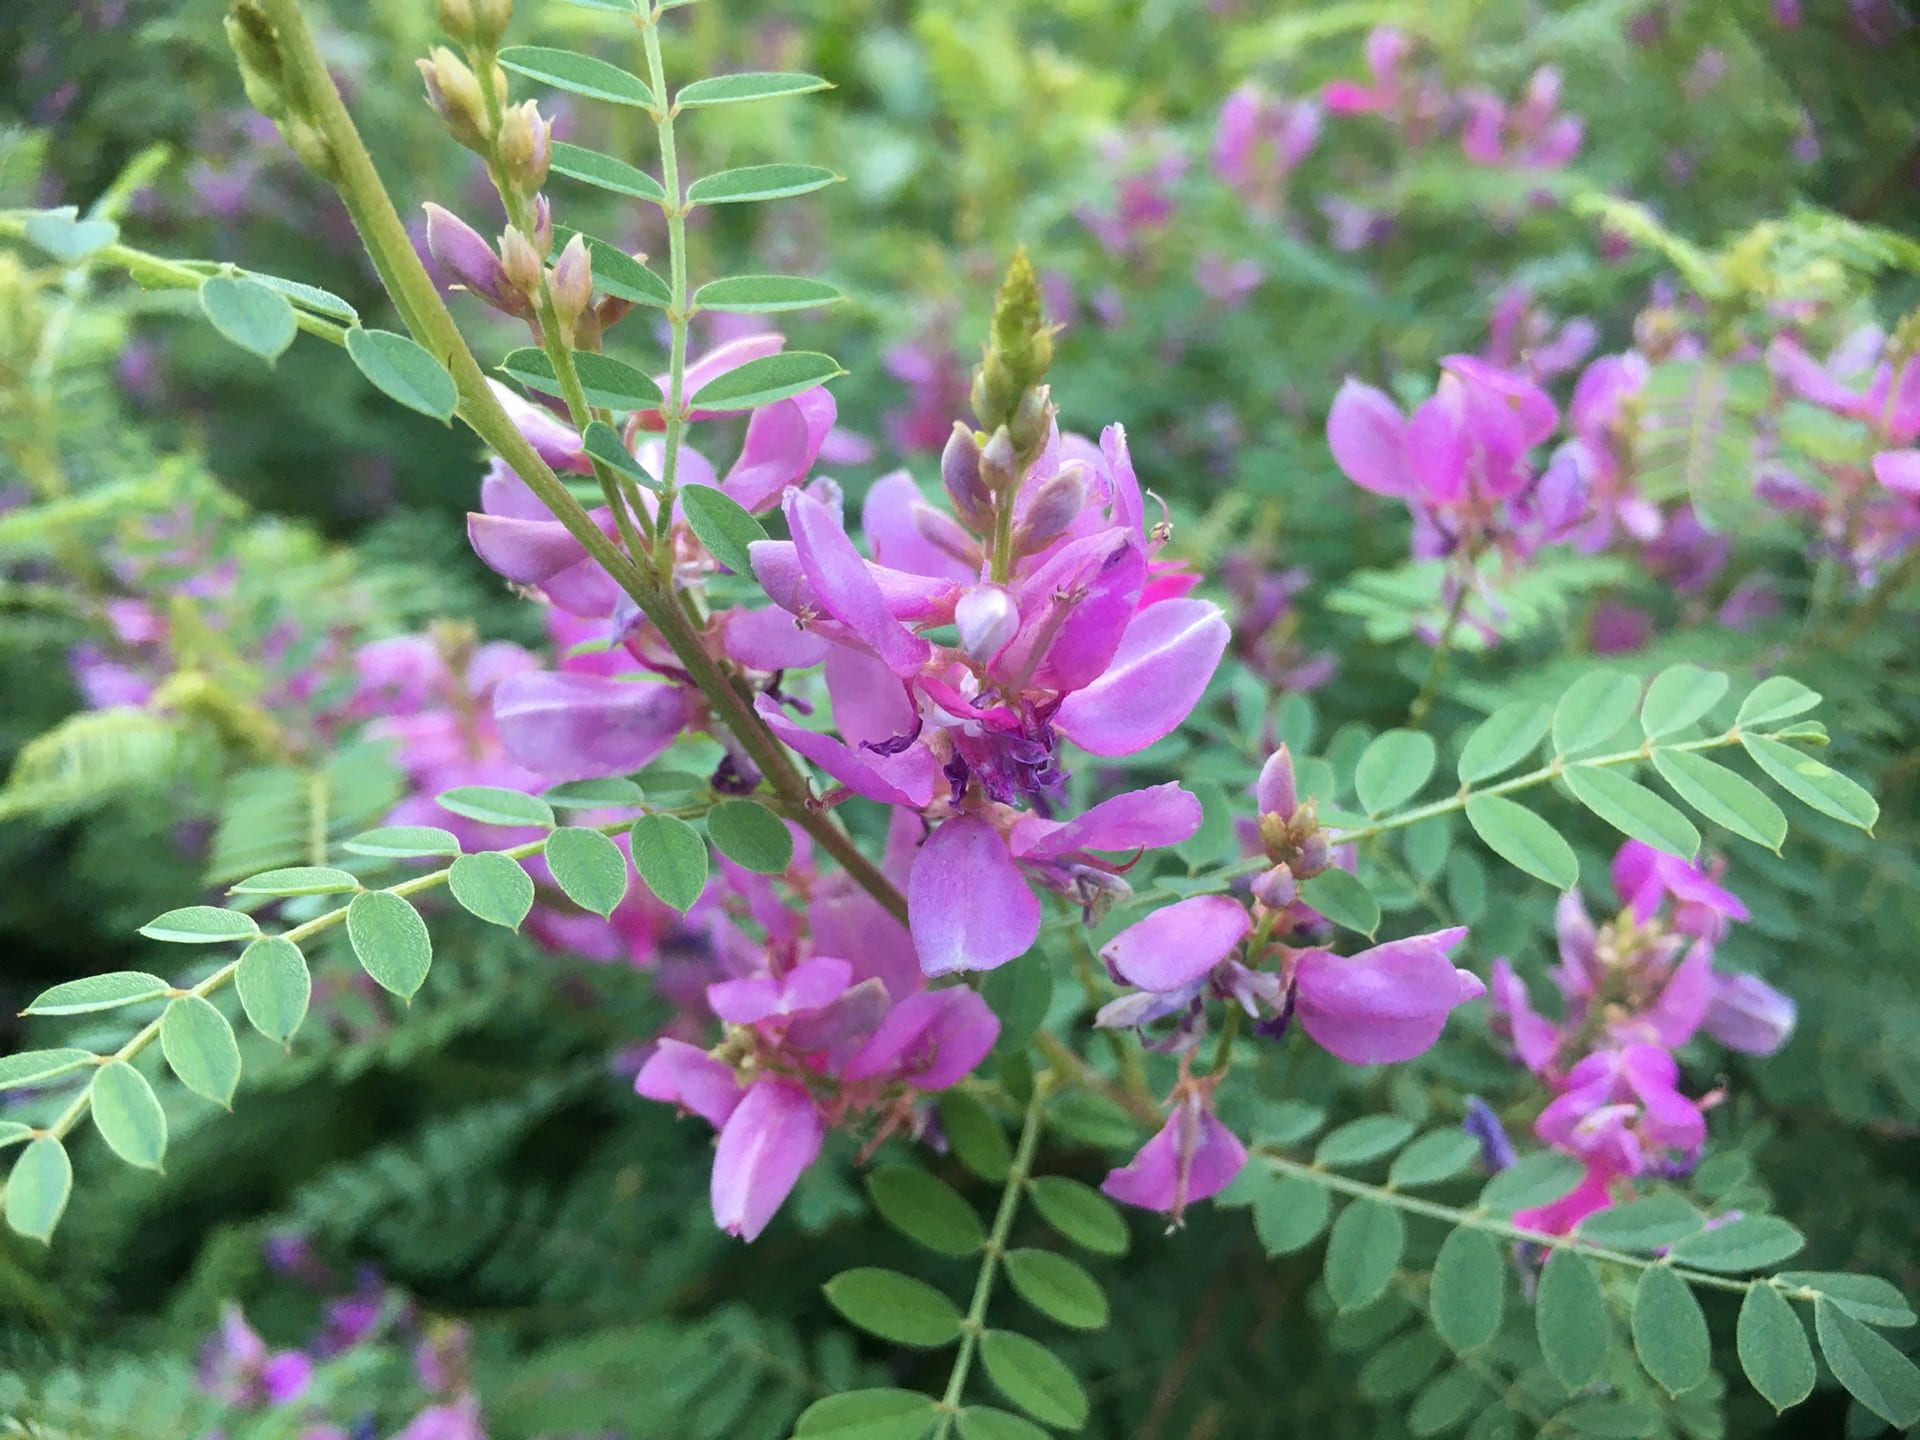 Indigofera's pink blossoms contrast beautifully with its blue-green foliage.